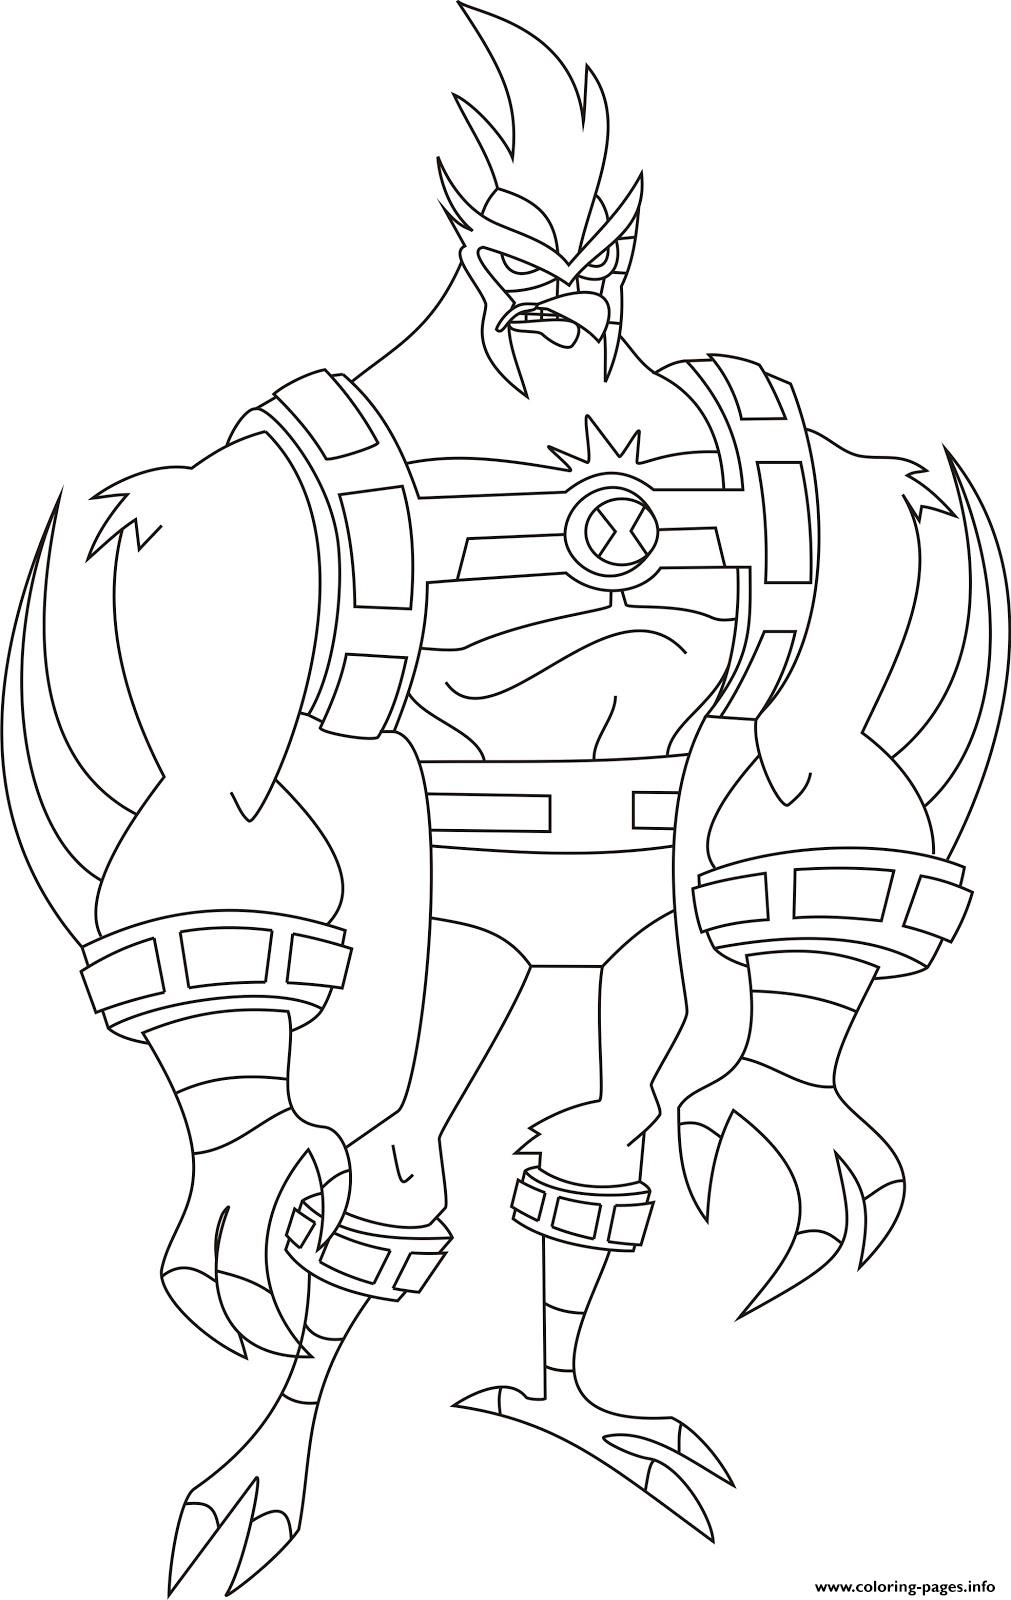 Dessin Ben 10 27 Coloring Pages